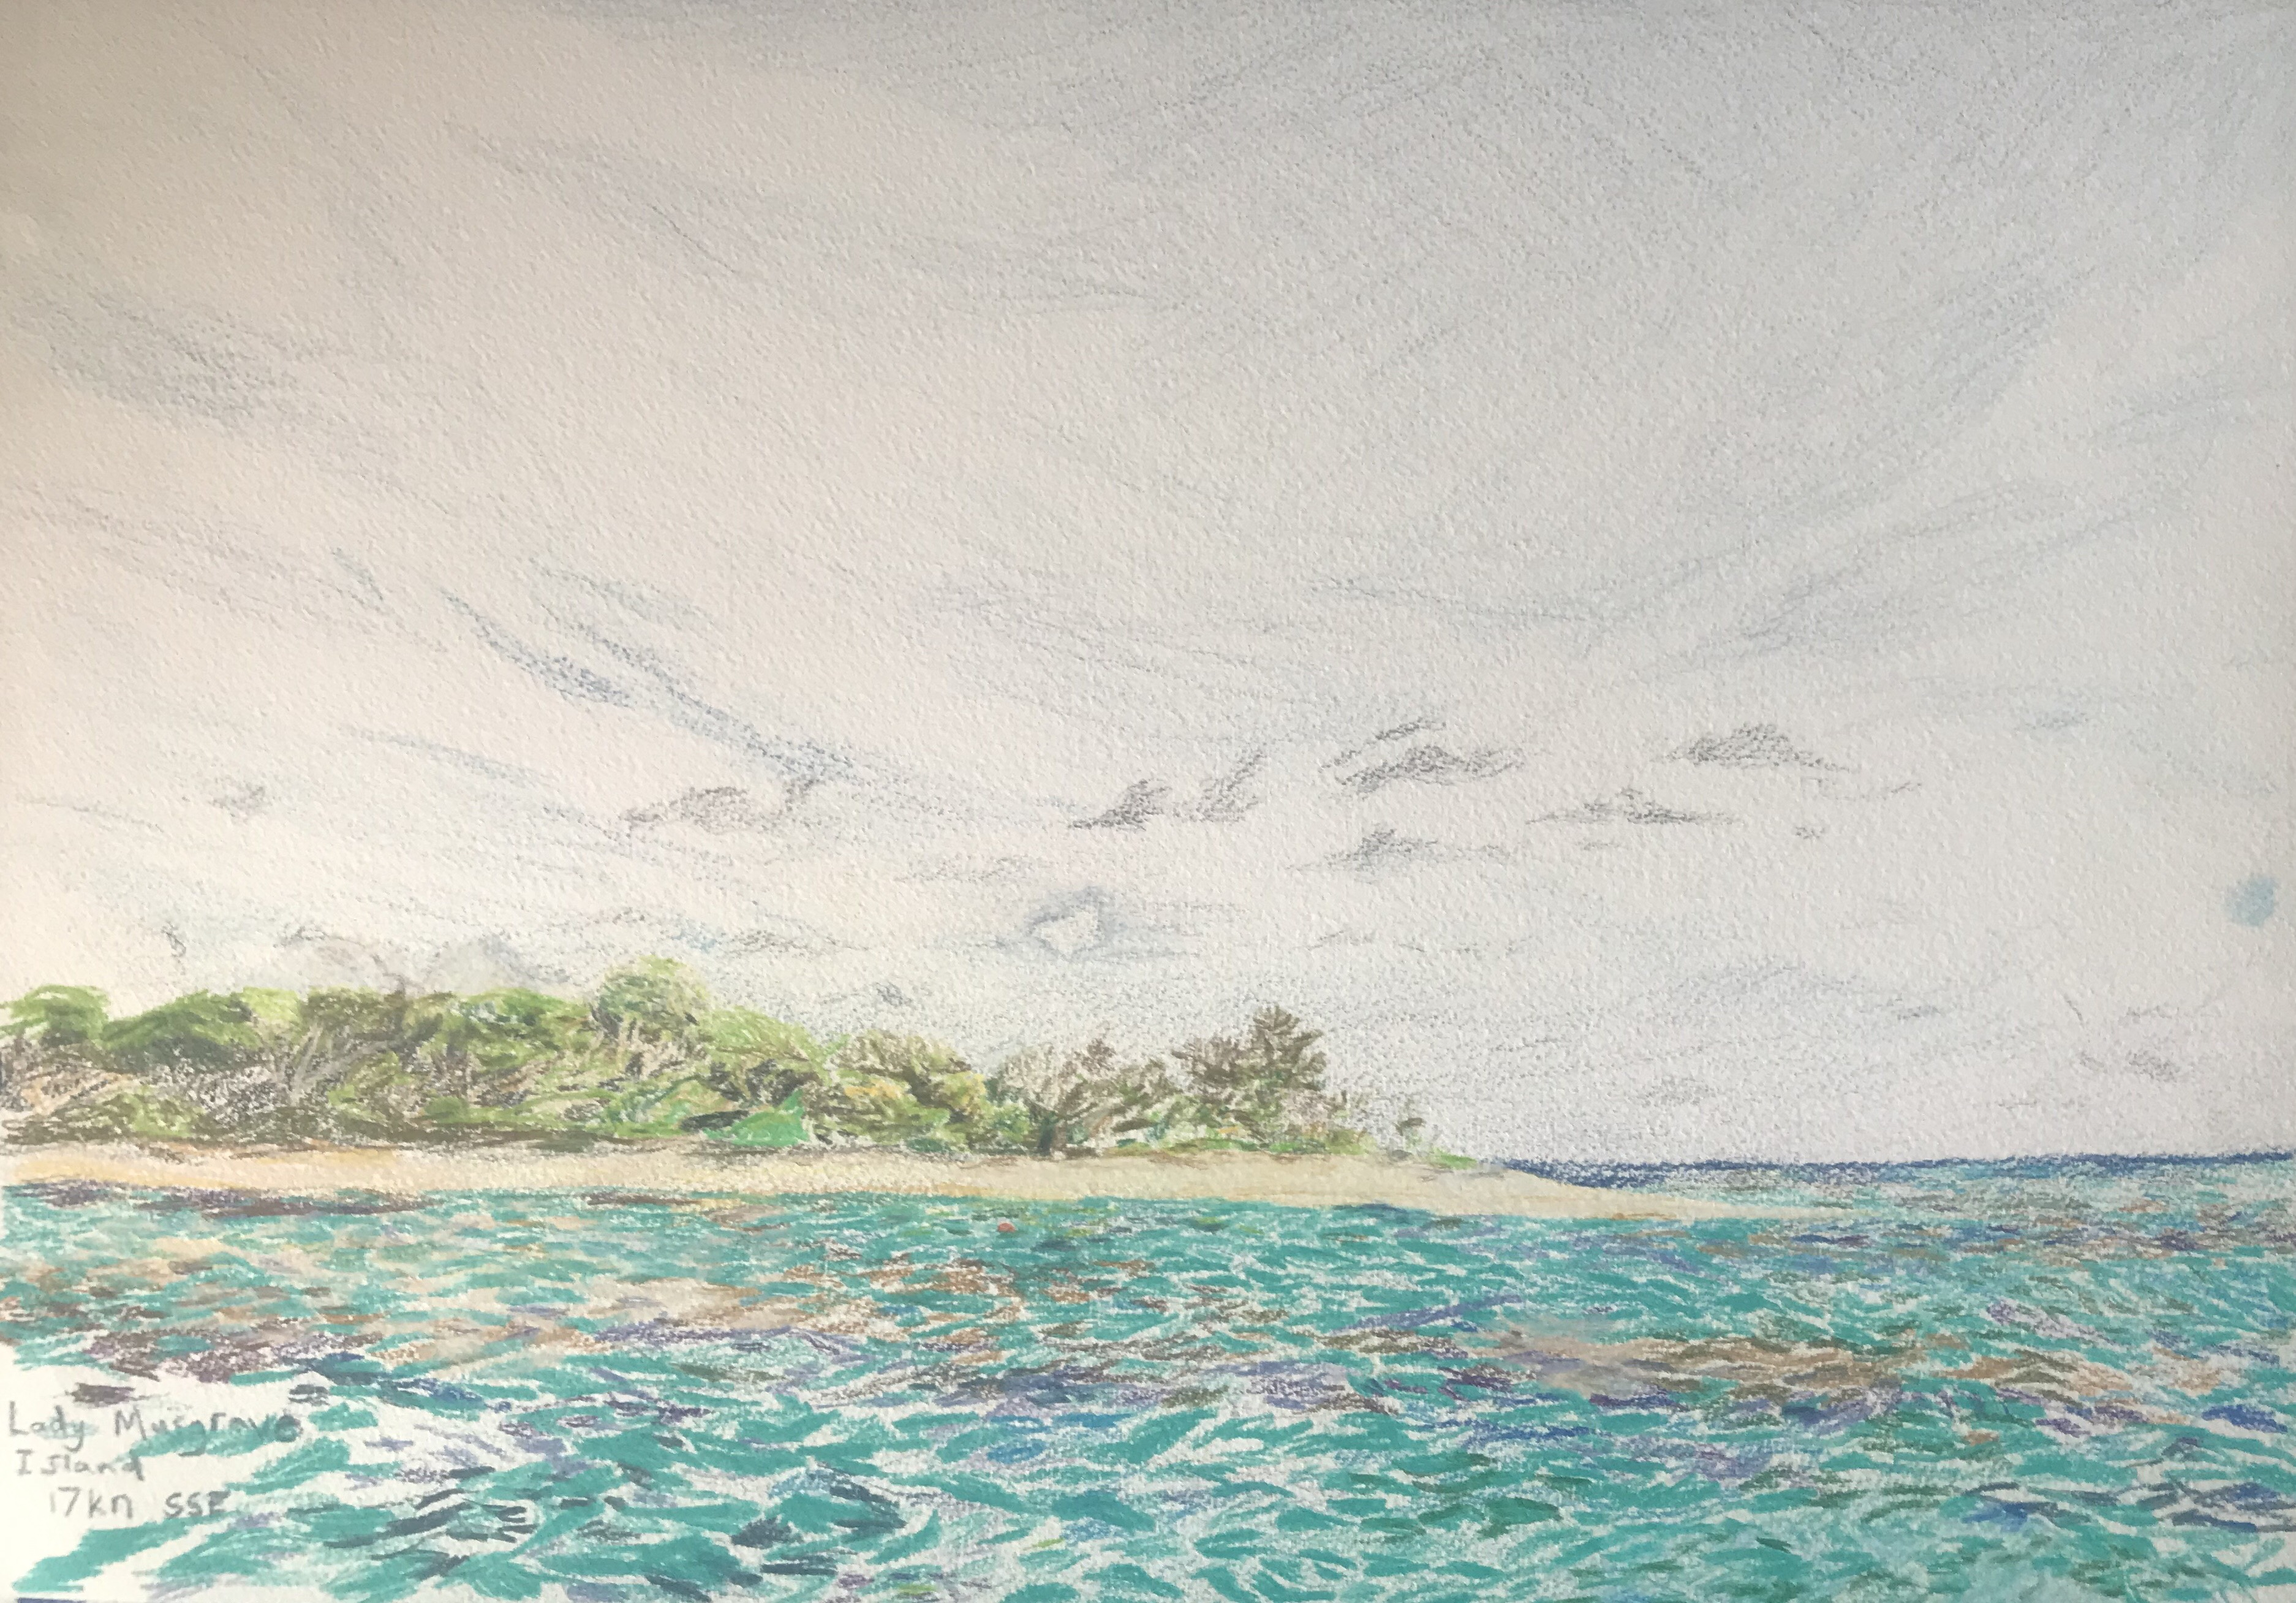 John Murray-lady Musgrave island. 30 by 42cm, pencil on paper, $1500